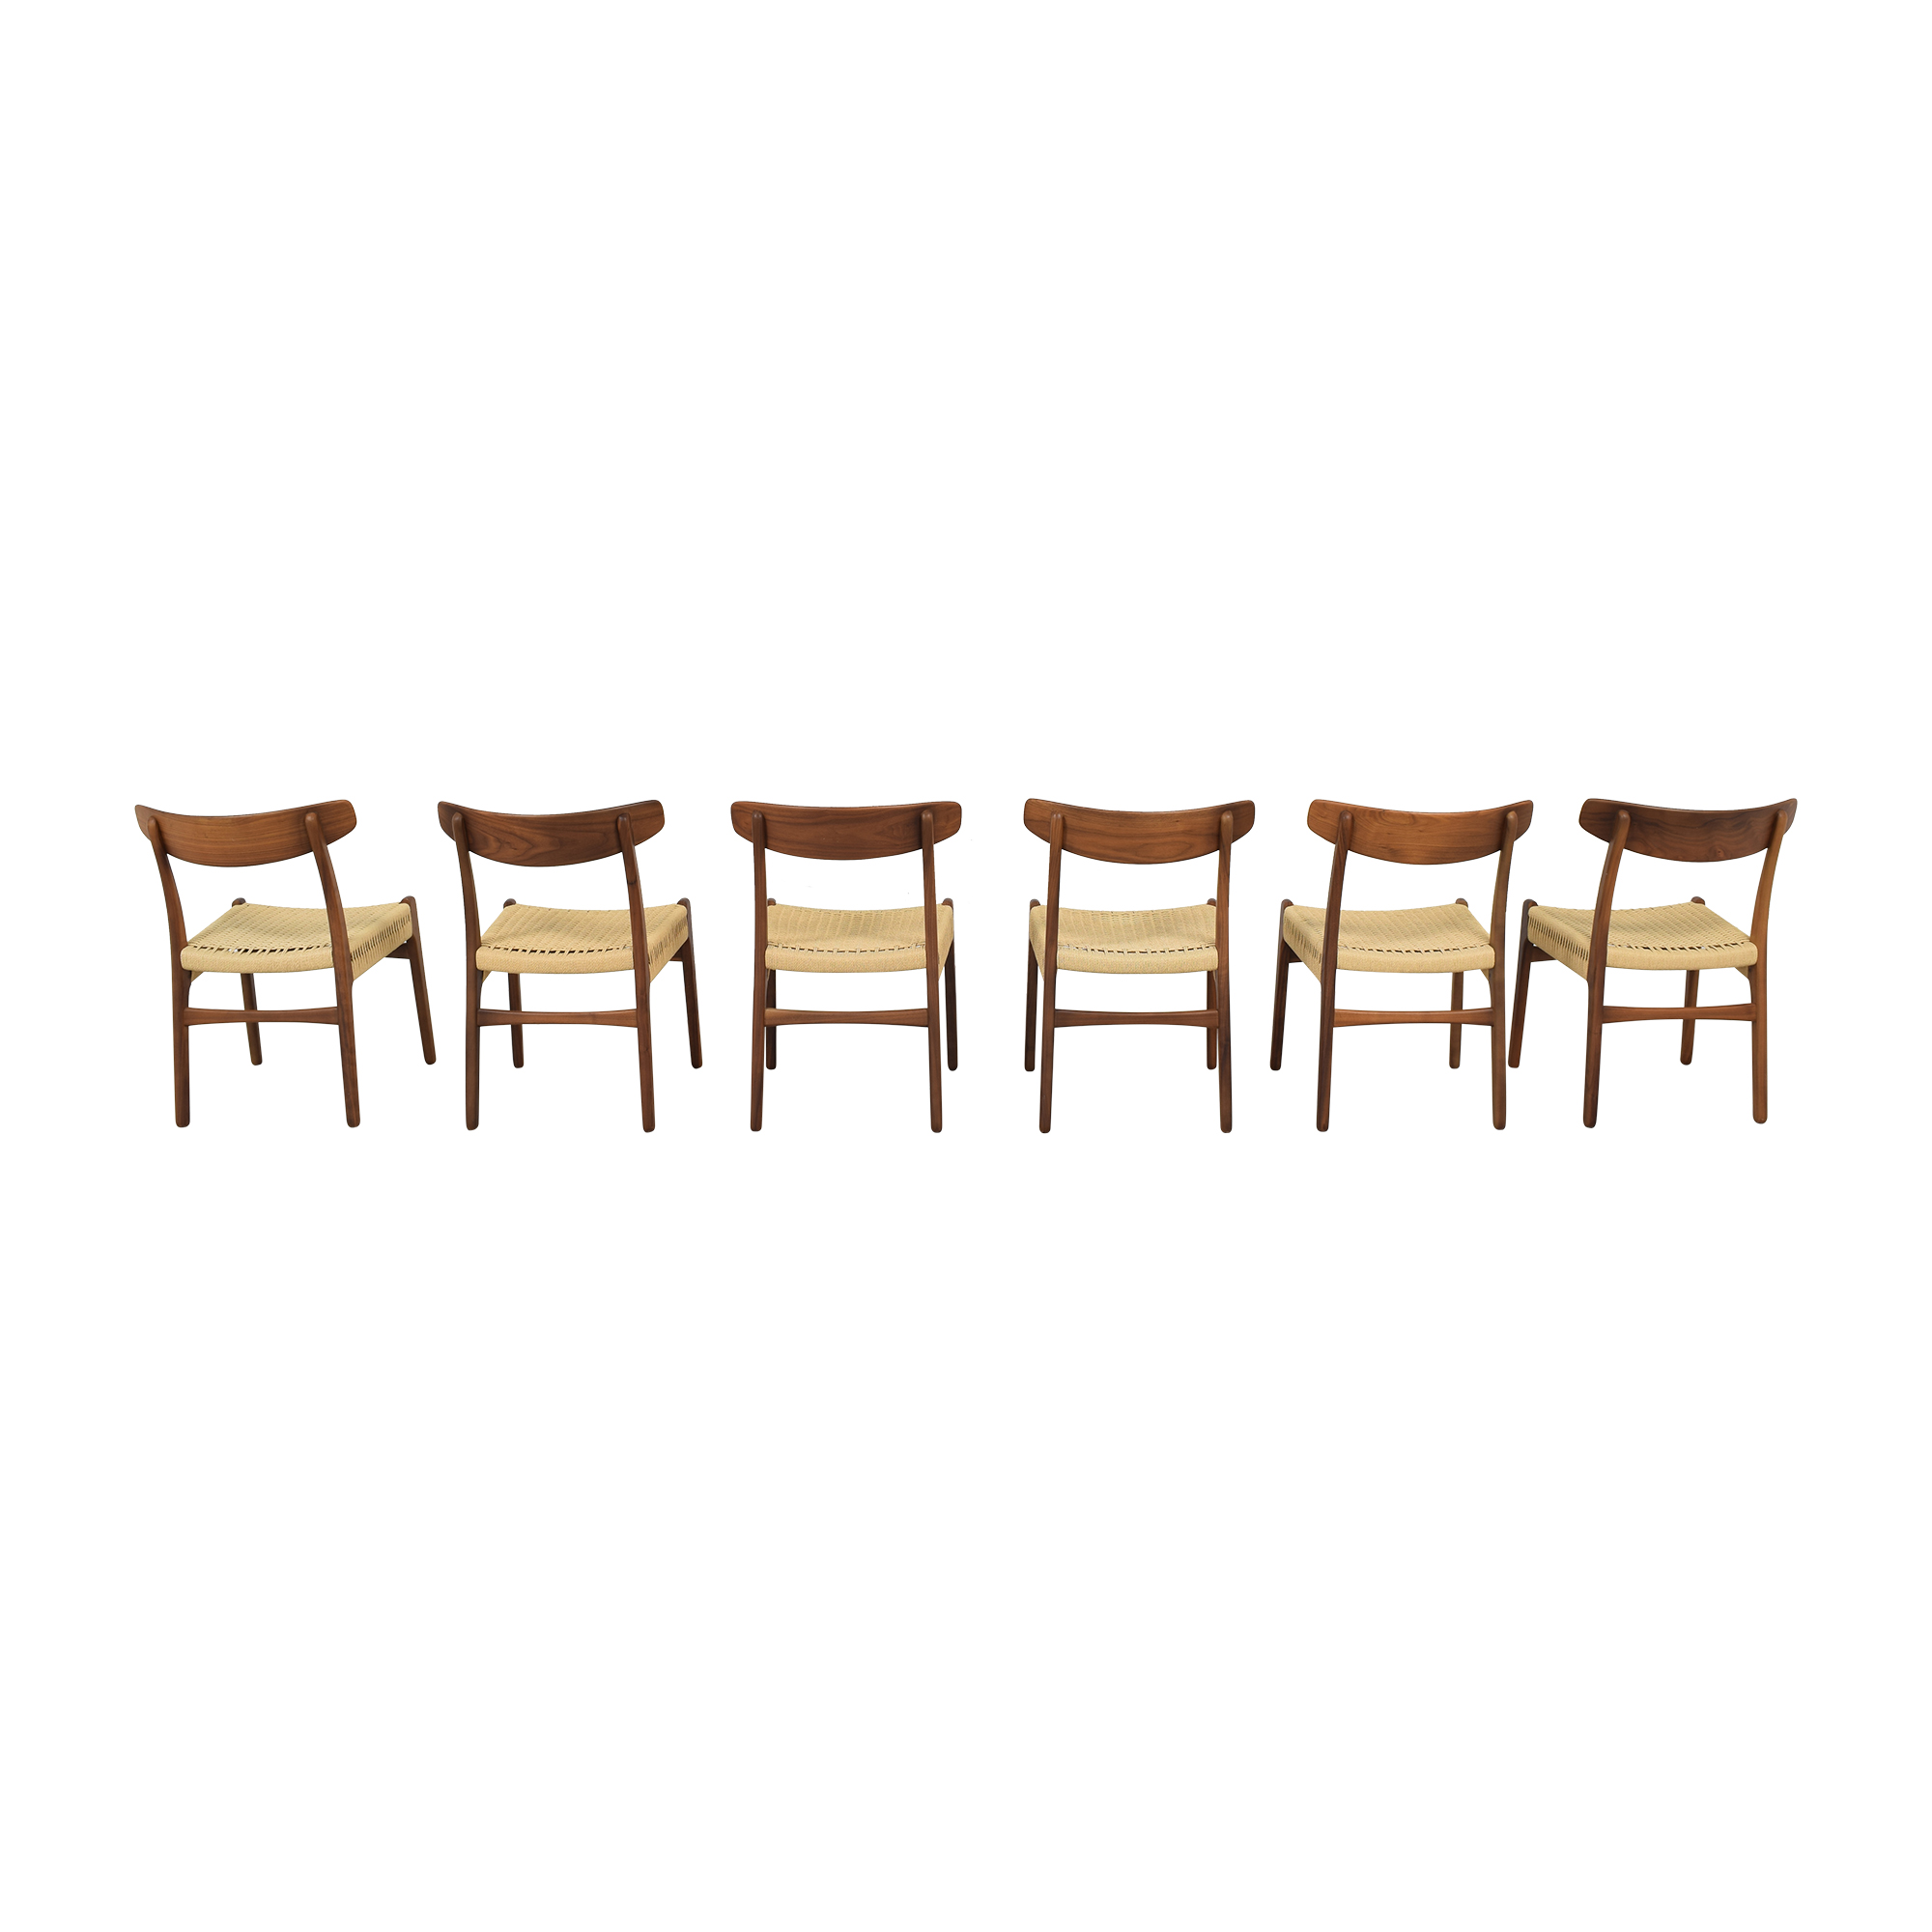 Sit Down New York Hans Wegner-Style Mid Century Dining Chairs Chairs